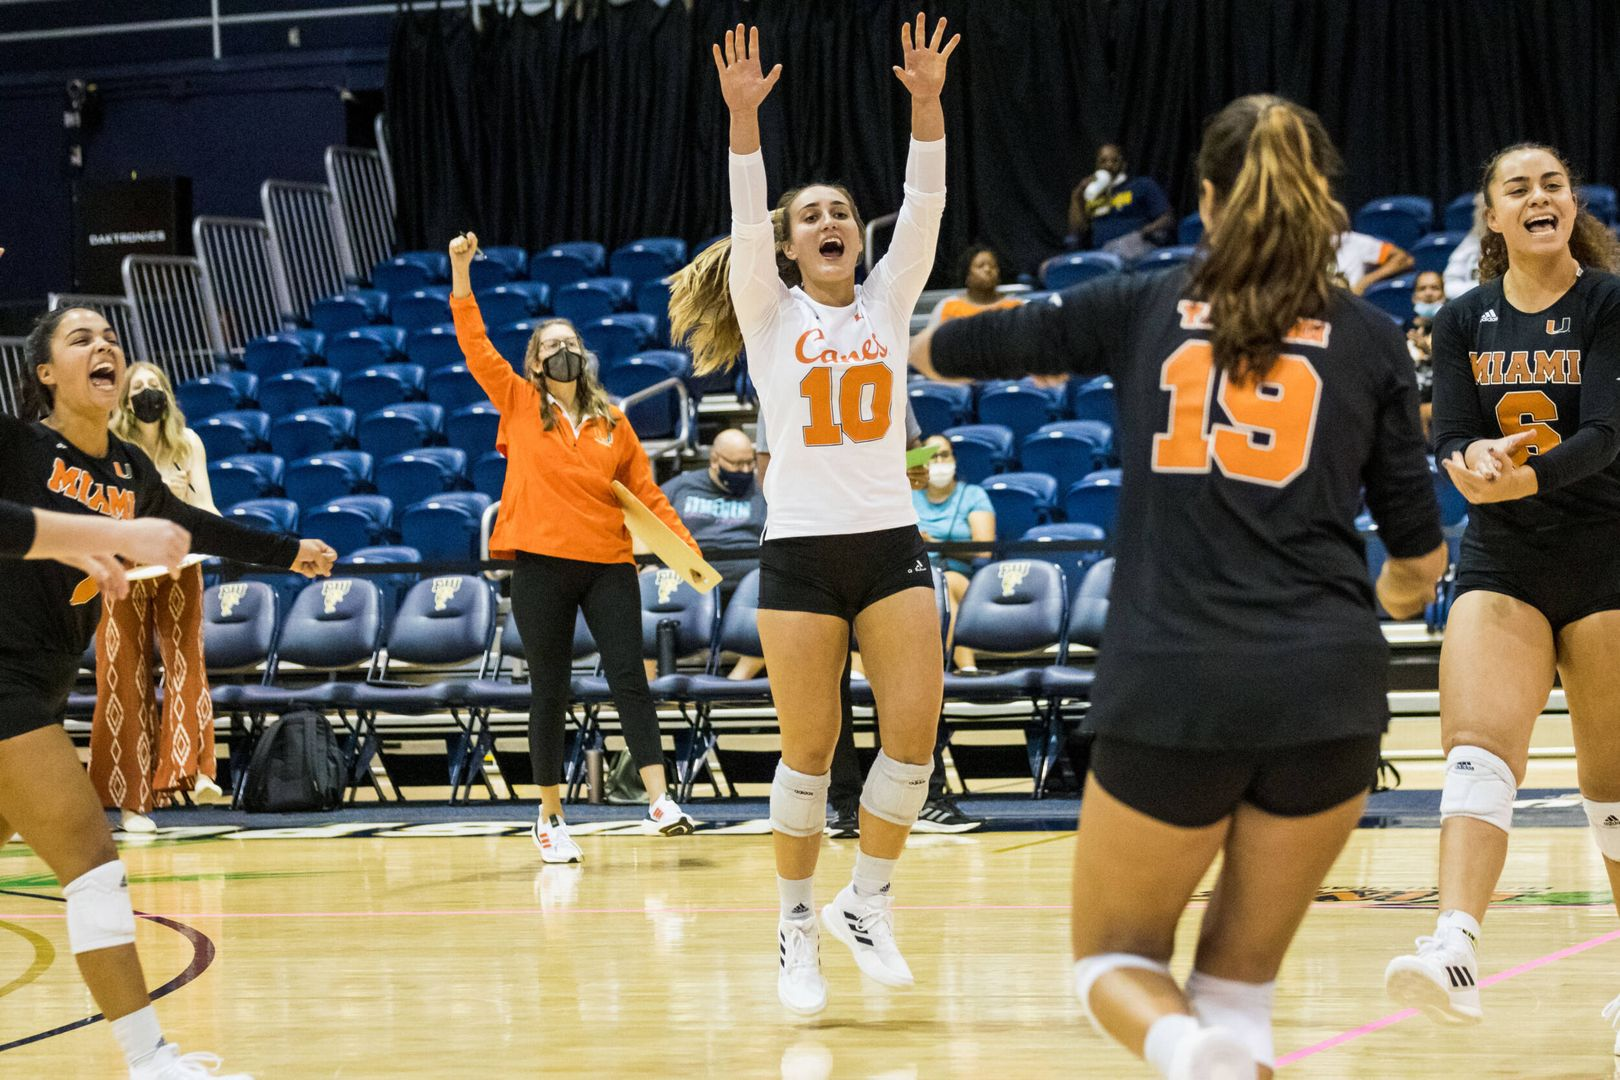 Canes Best Panthers in Three Sets